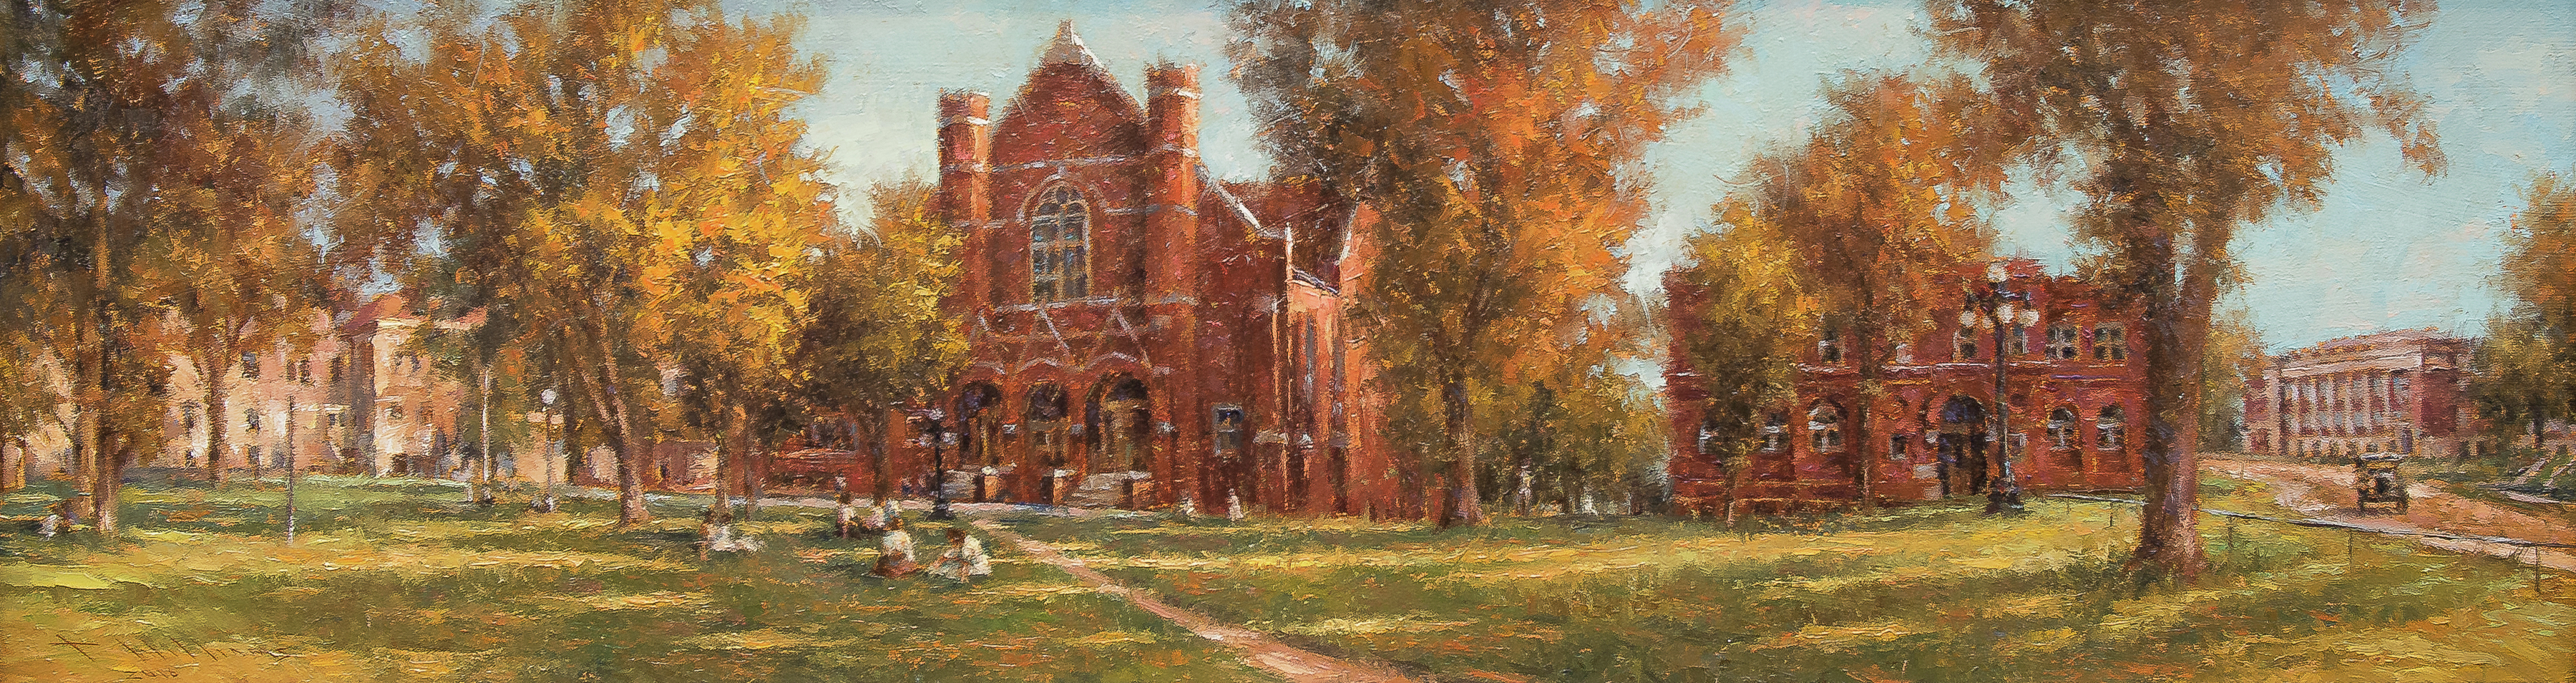 painting the legacy of nebraska shows the Peru State Campus set in the fall